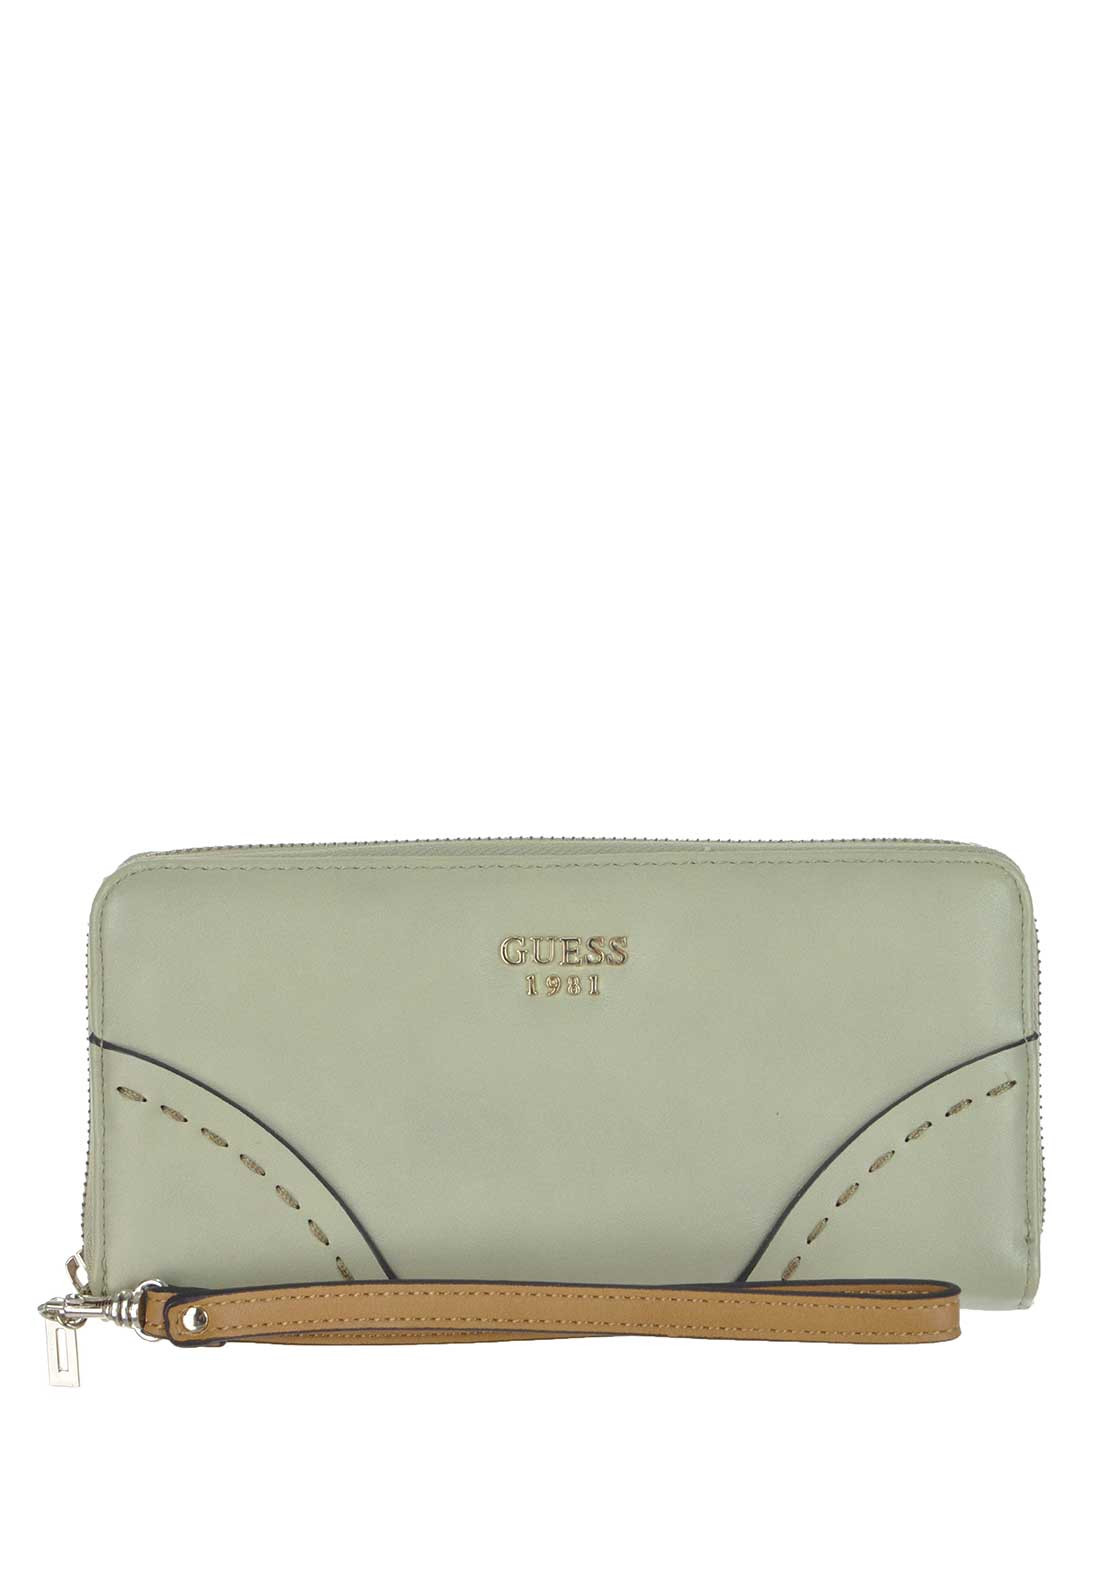 Guess Juliana Large Wallet, Sage Green and White